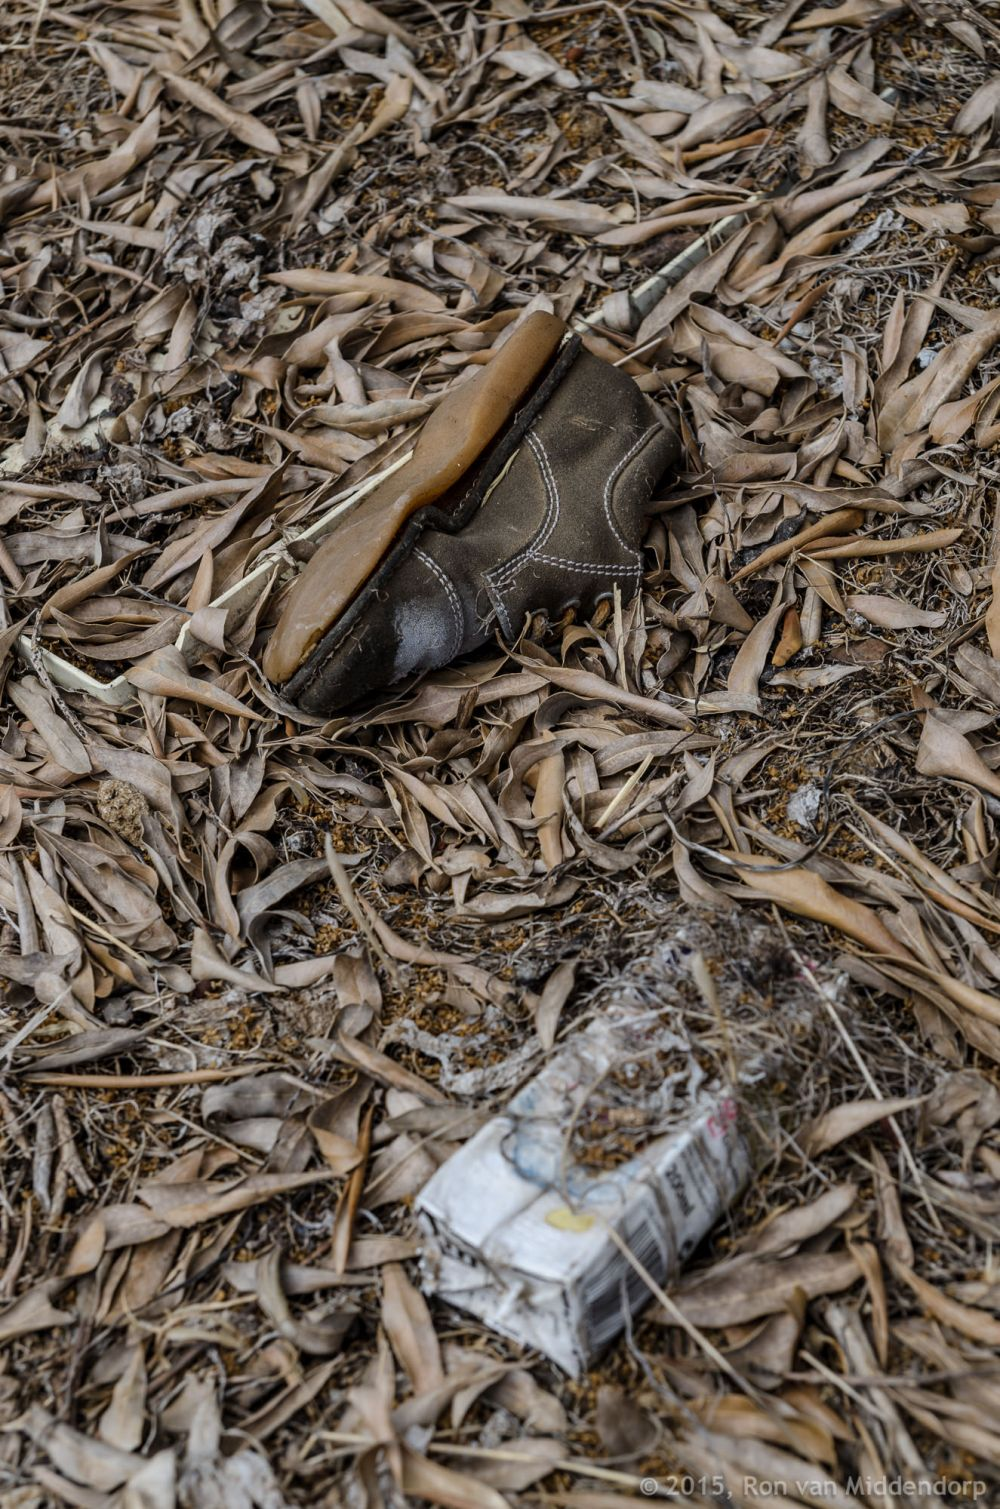 photo: garbage in nature